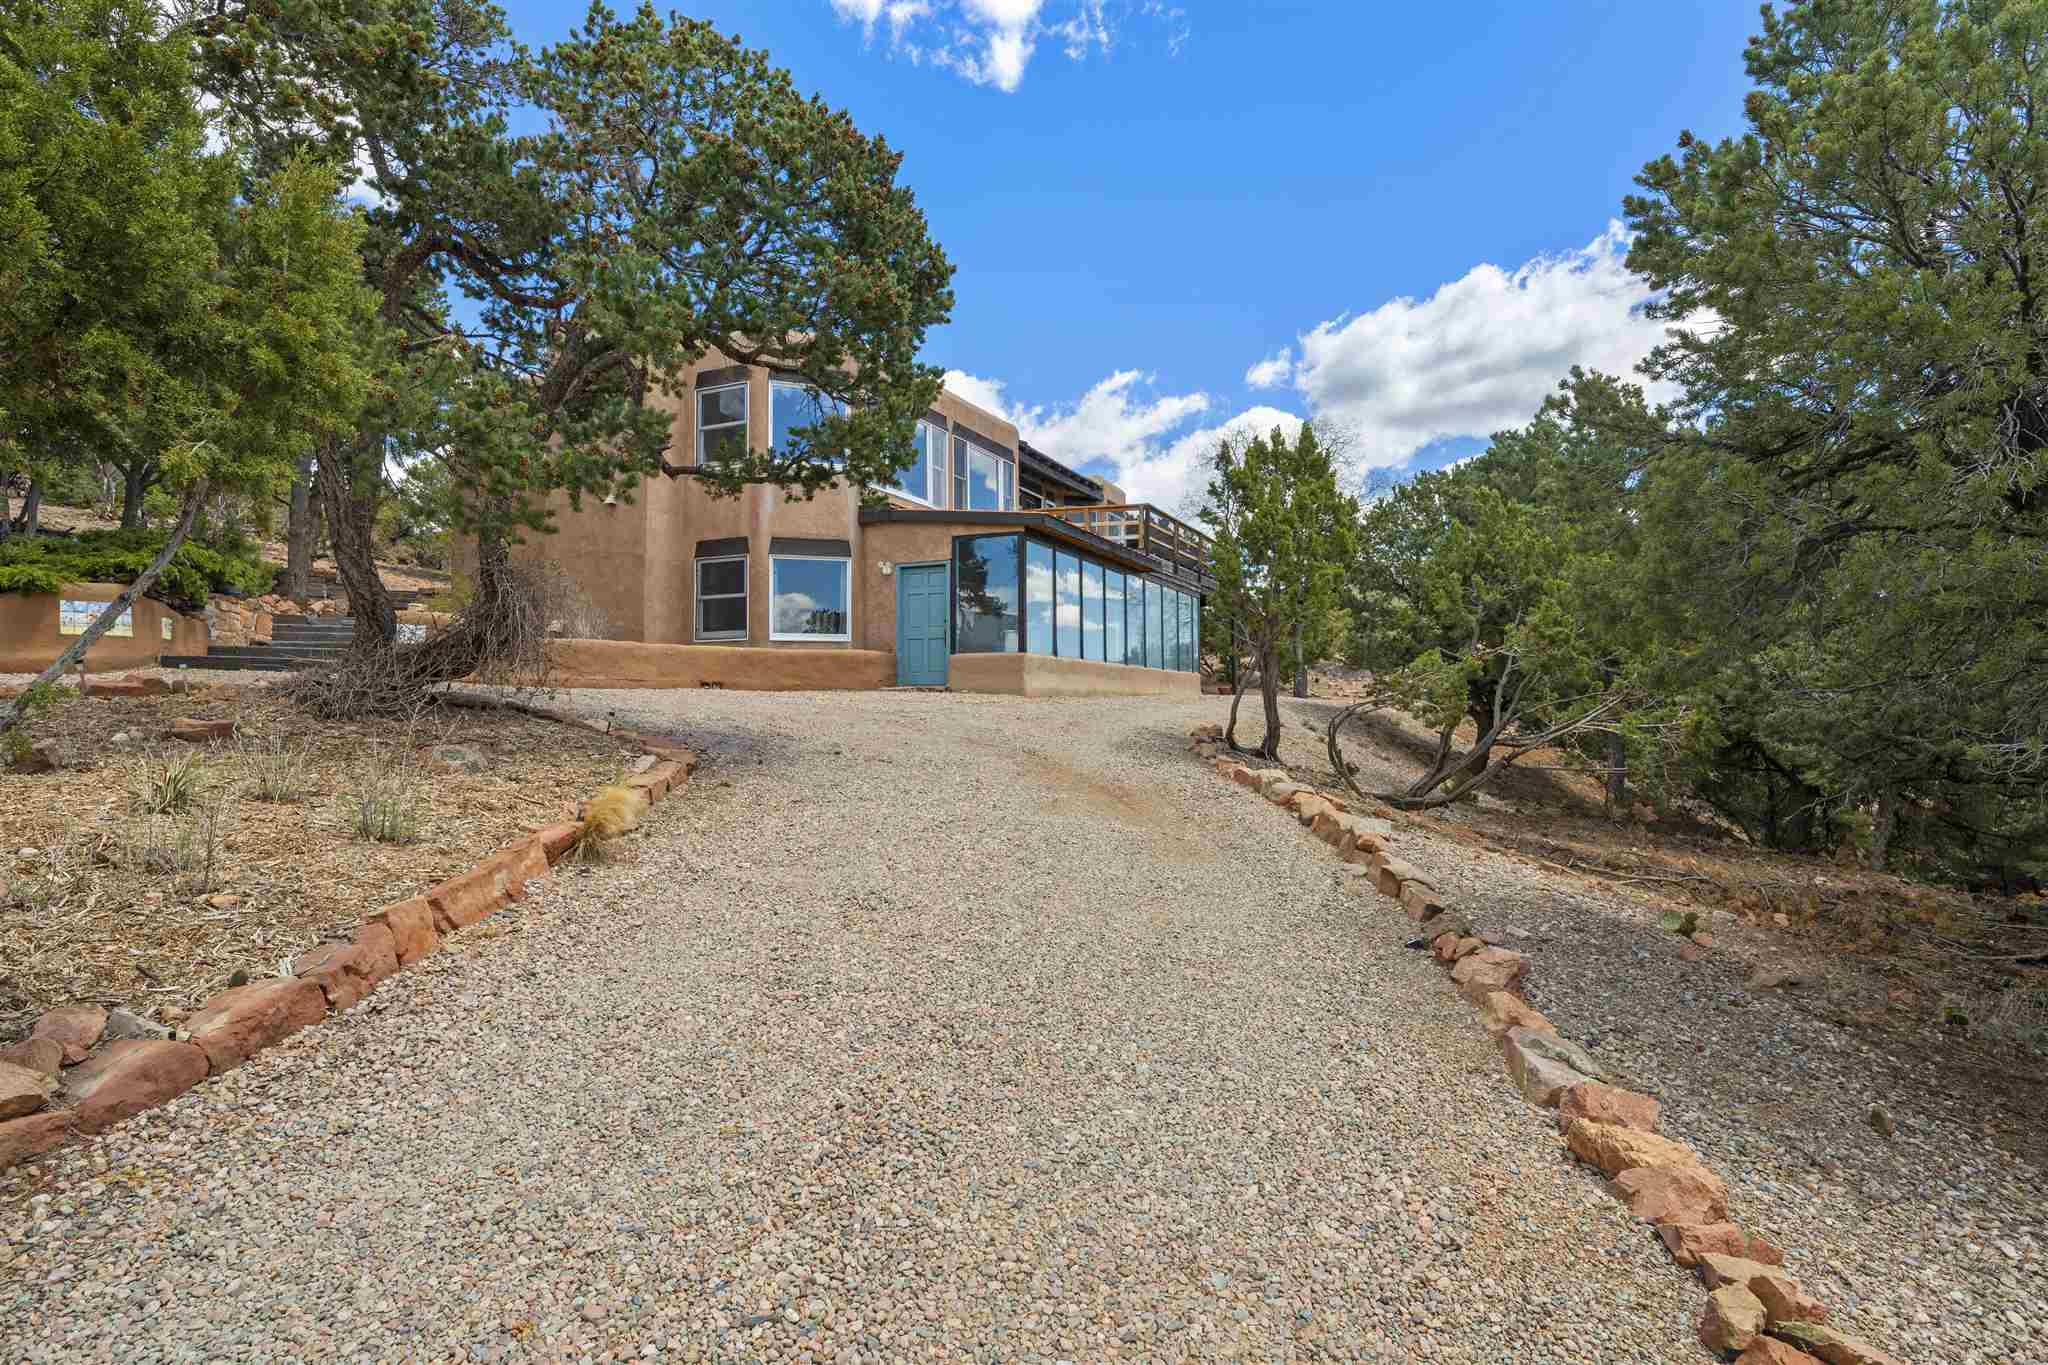 A rare 5-acre property located minutes from downtown Santa Fe, this multi-level home offers spectacular views at every turn. Tucked high in the hills, this former horse property allows for plenty of space to explore and take in the distinctive landscape. This property features classic Pueblo-style details of viga-and-plank ceilings, Saltillo tile floors and wood burning Kiva fireplaces.  A solarium below and sun deck on the upper level give opportunities to enjoy the views in any kind of weather.   Large picture windows on both levels of the home and a multiplicity of skylights provide ample natural light.  Formal and casual dining are both facilitated by a breakfast room set in a nook with bay windows and the adjoining dining room that accesses a porch that can be used for outdoor summer dining.  Three spacious bedrooms, a den with a wood-burning stove and office/study space are conducive to guest accommodations and/or family living.  A detached log cabin provides a storage option or opportunity for conversion into a guest cottage or studio.  Property has a private well.